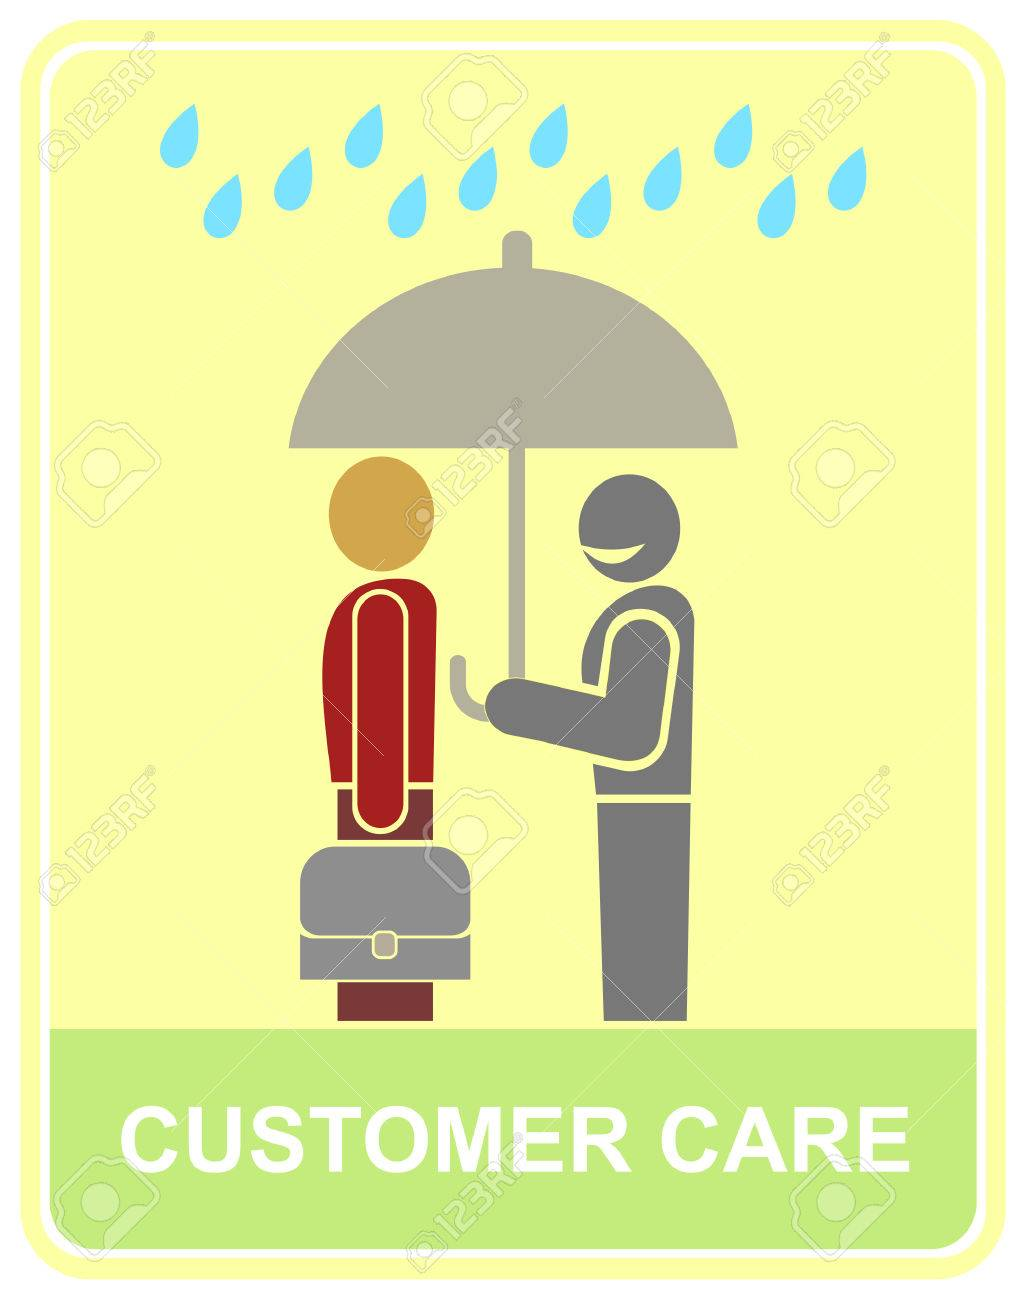 A worker holds an umbrella over the client - customer service icon. Vector stylized color illustration. Stock Vector - 5384203